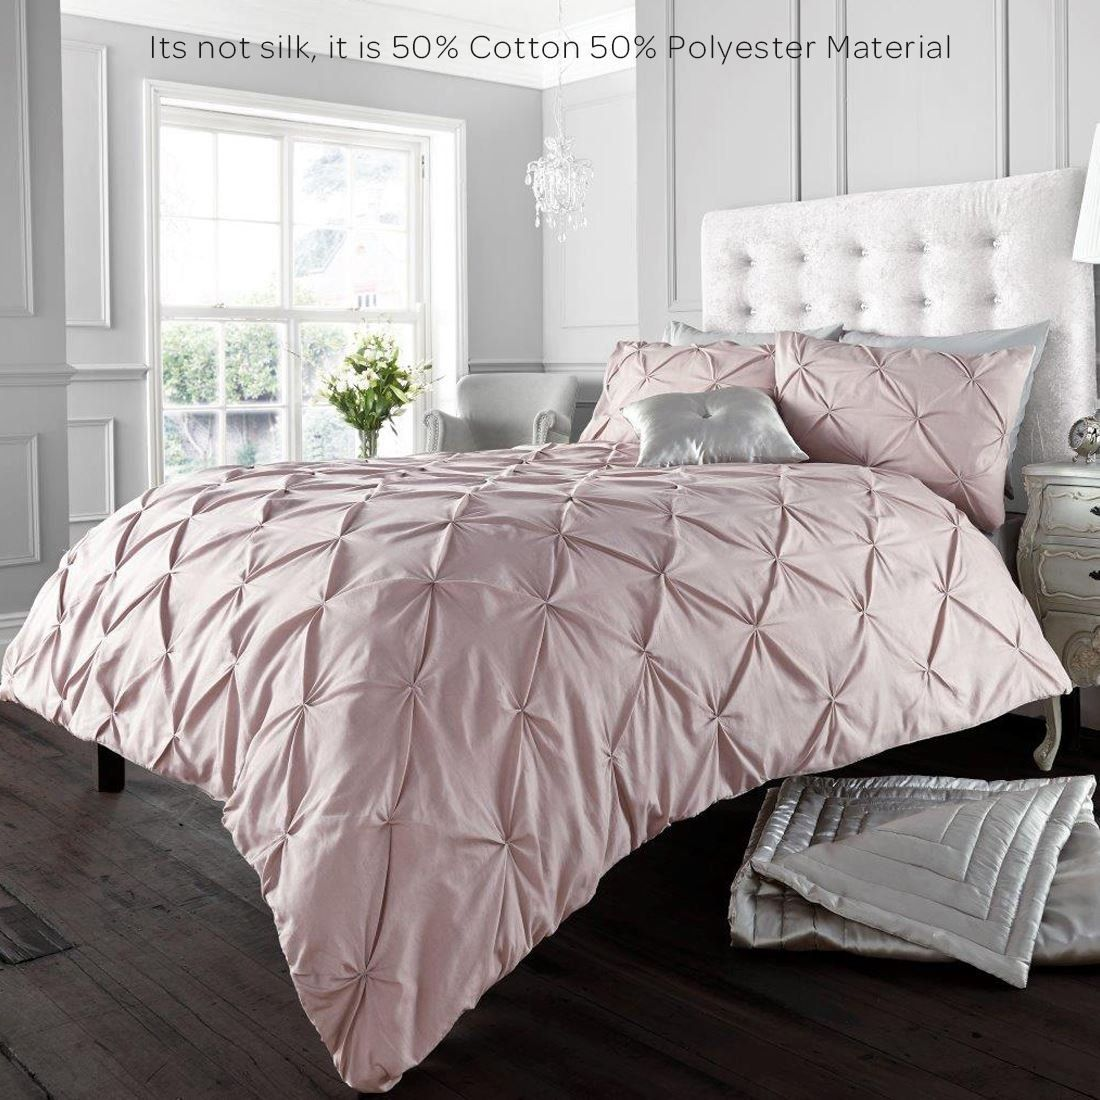 navy cover and covers blush bright bedding pink duvet